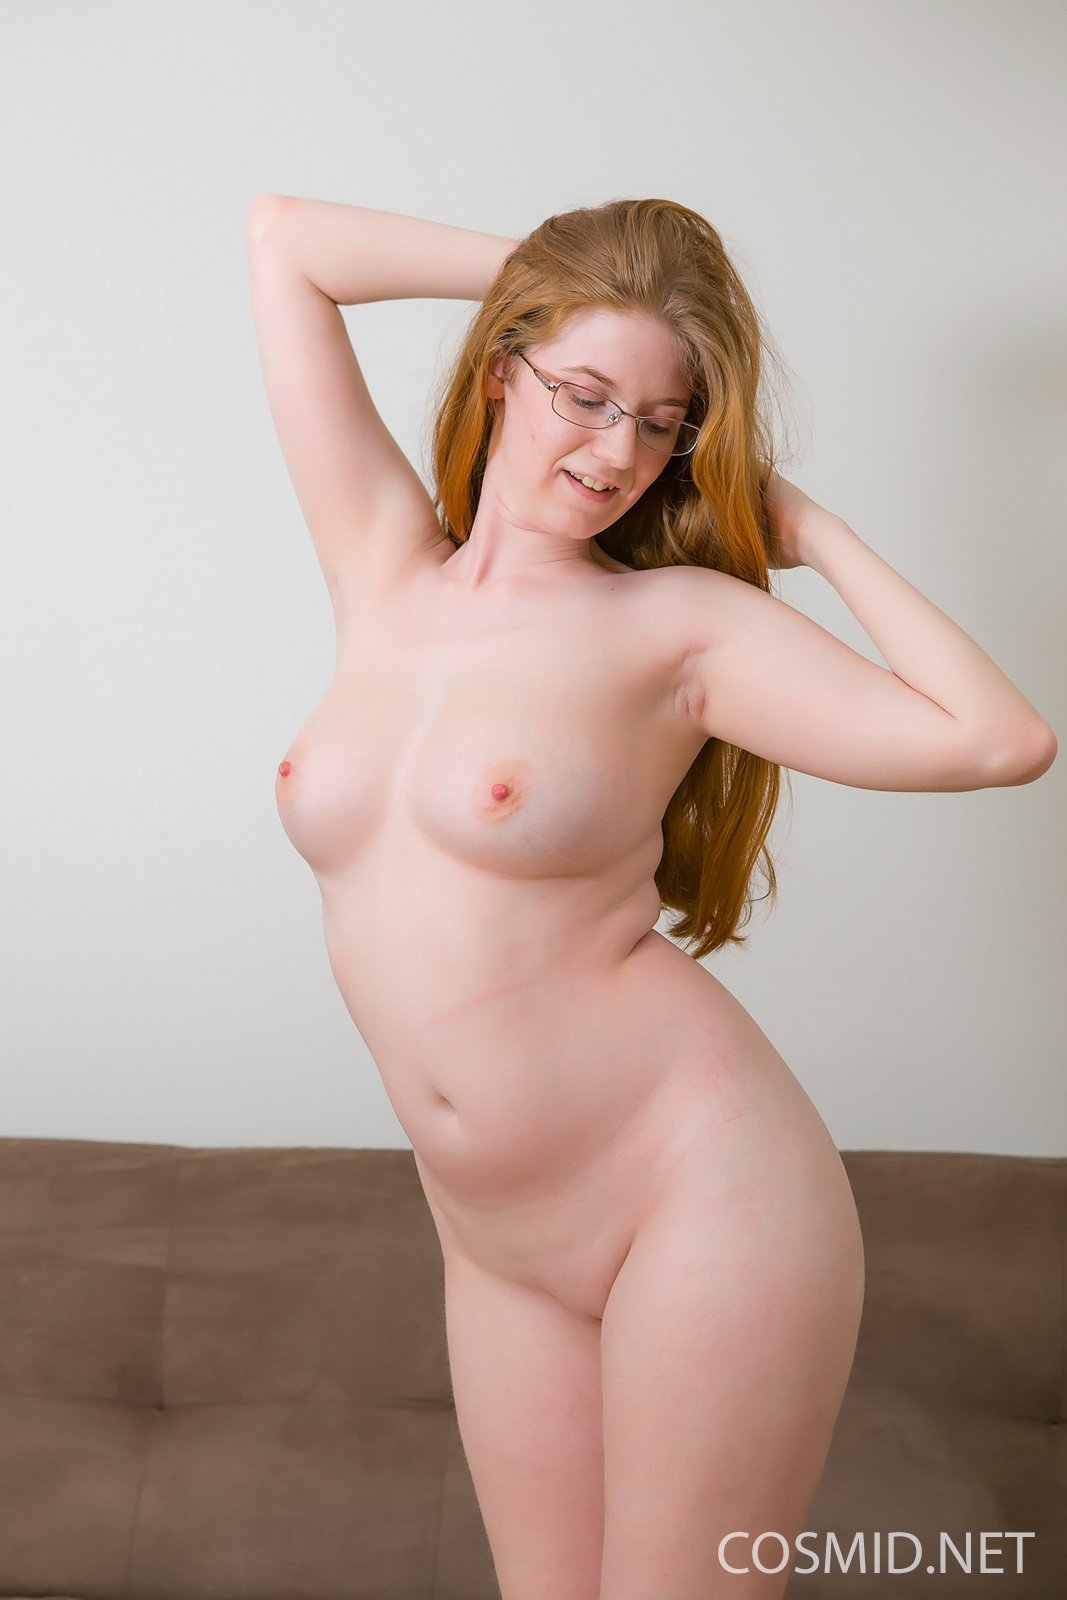 Remarkable, dave angelo colt studio nude photos opinion